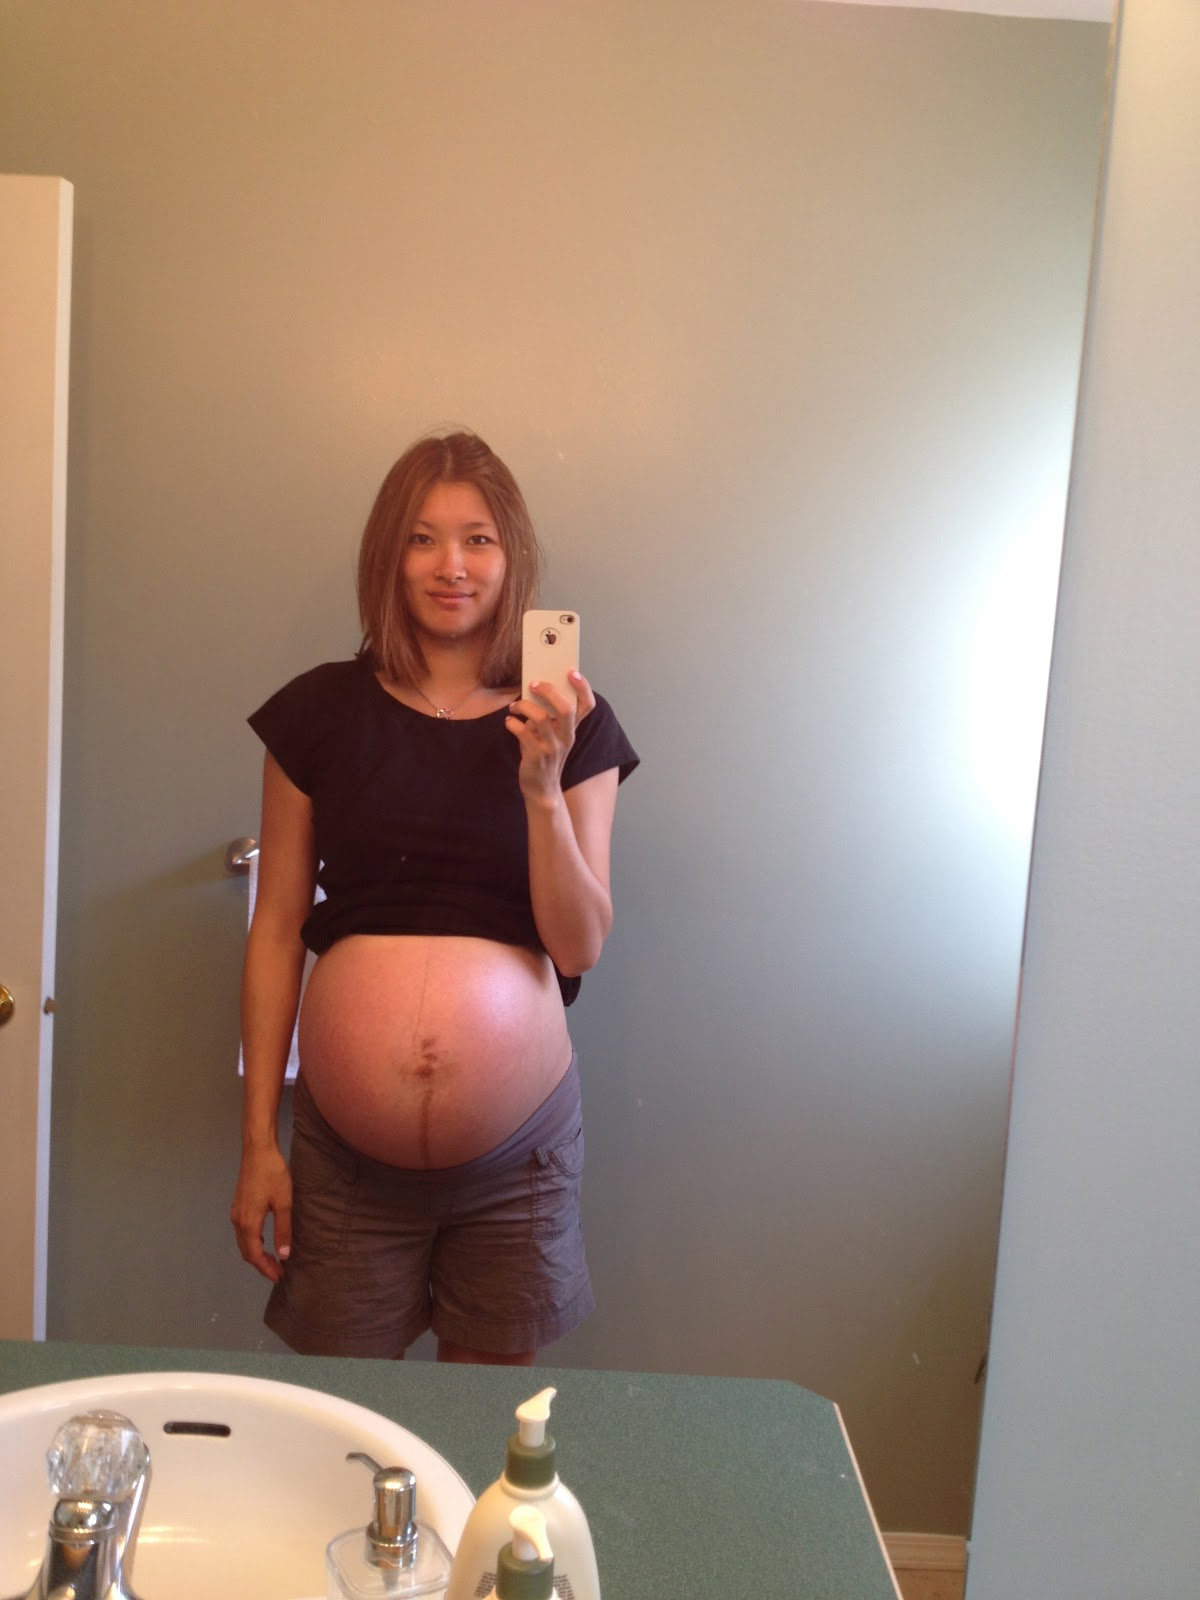 9 months pregnant with quadruplets